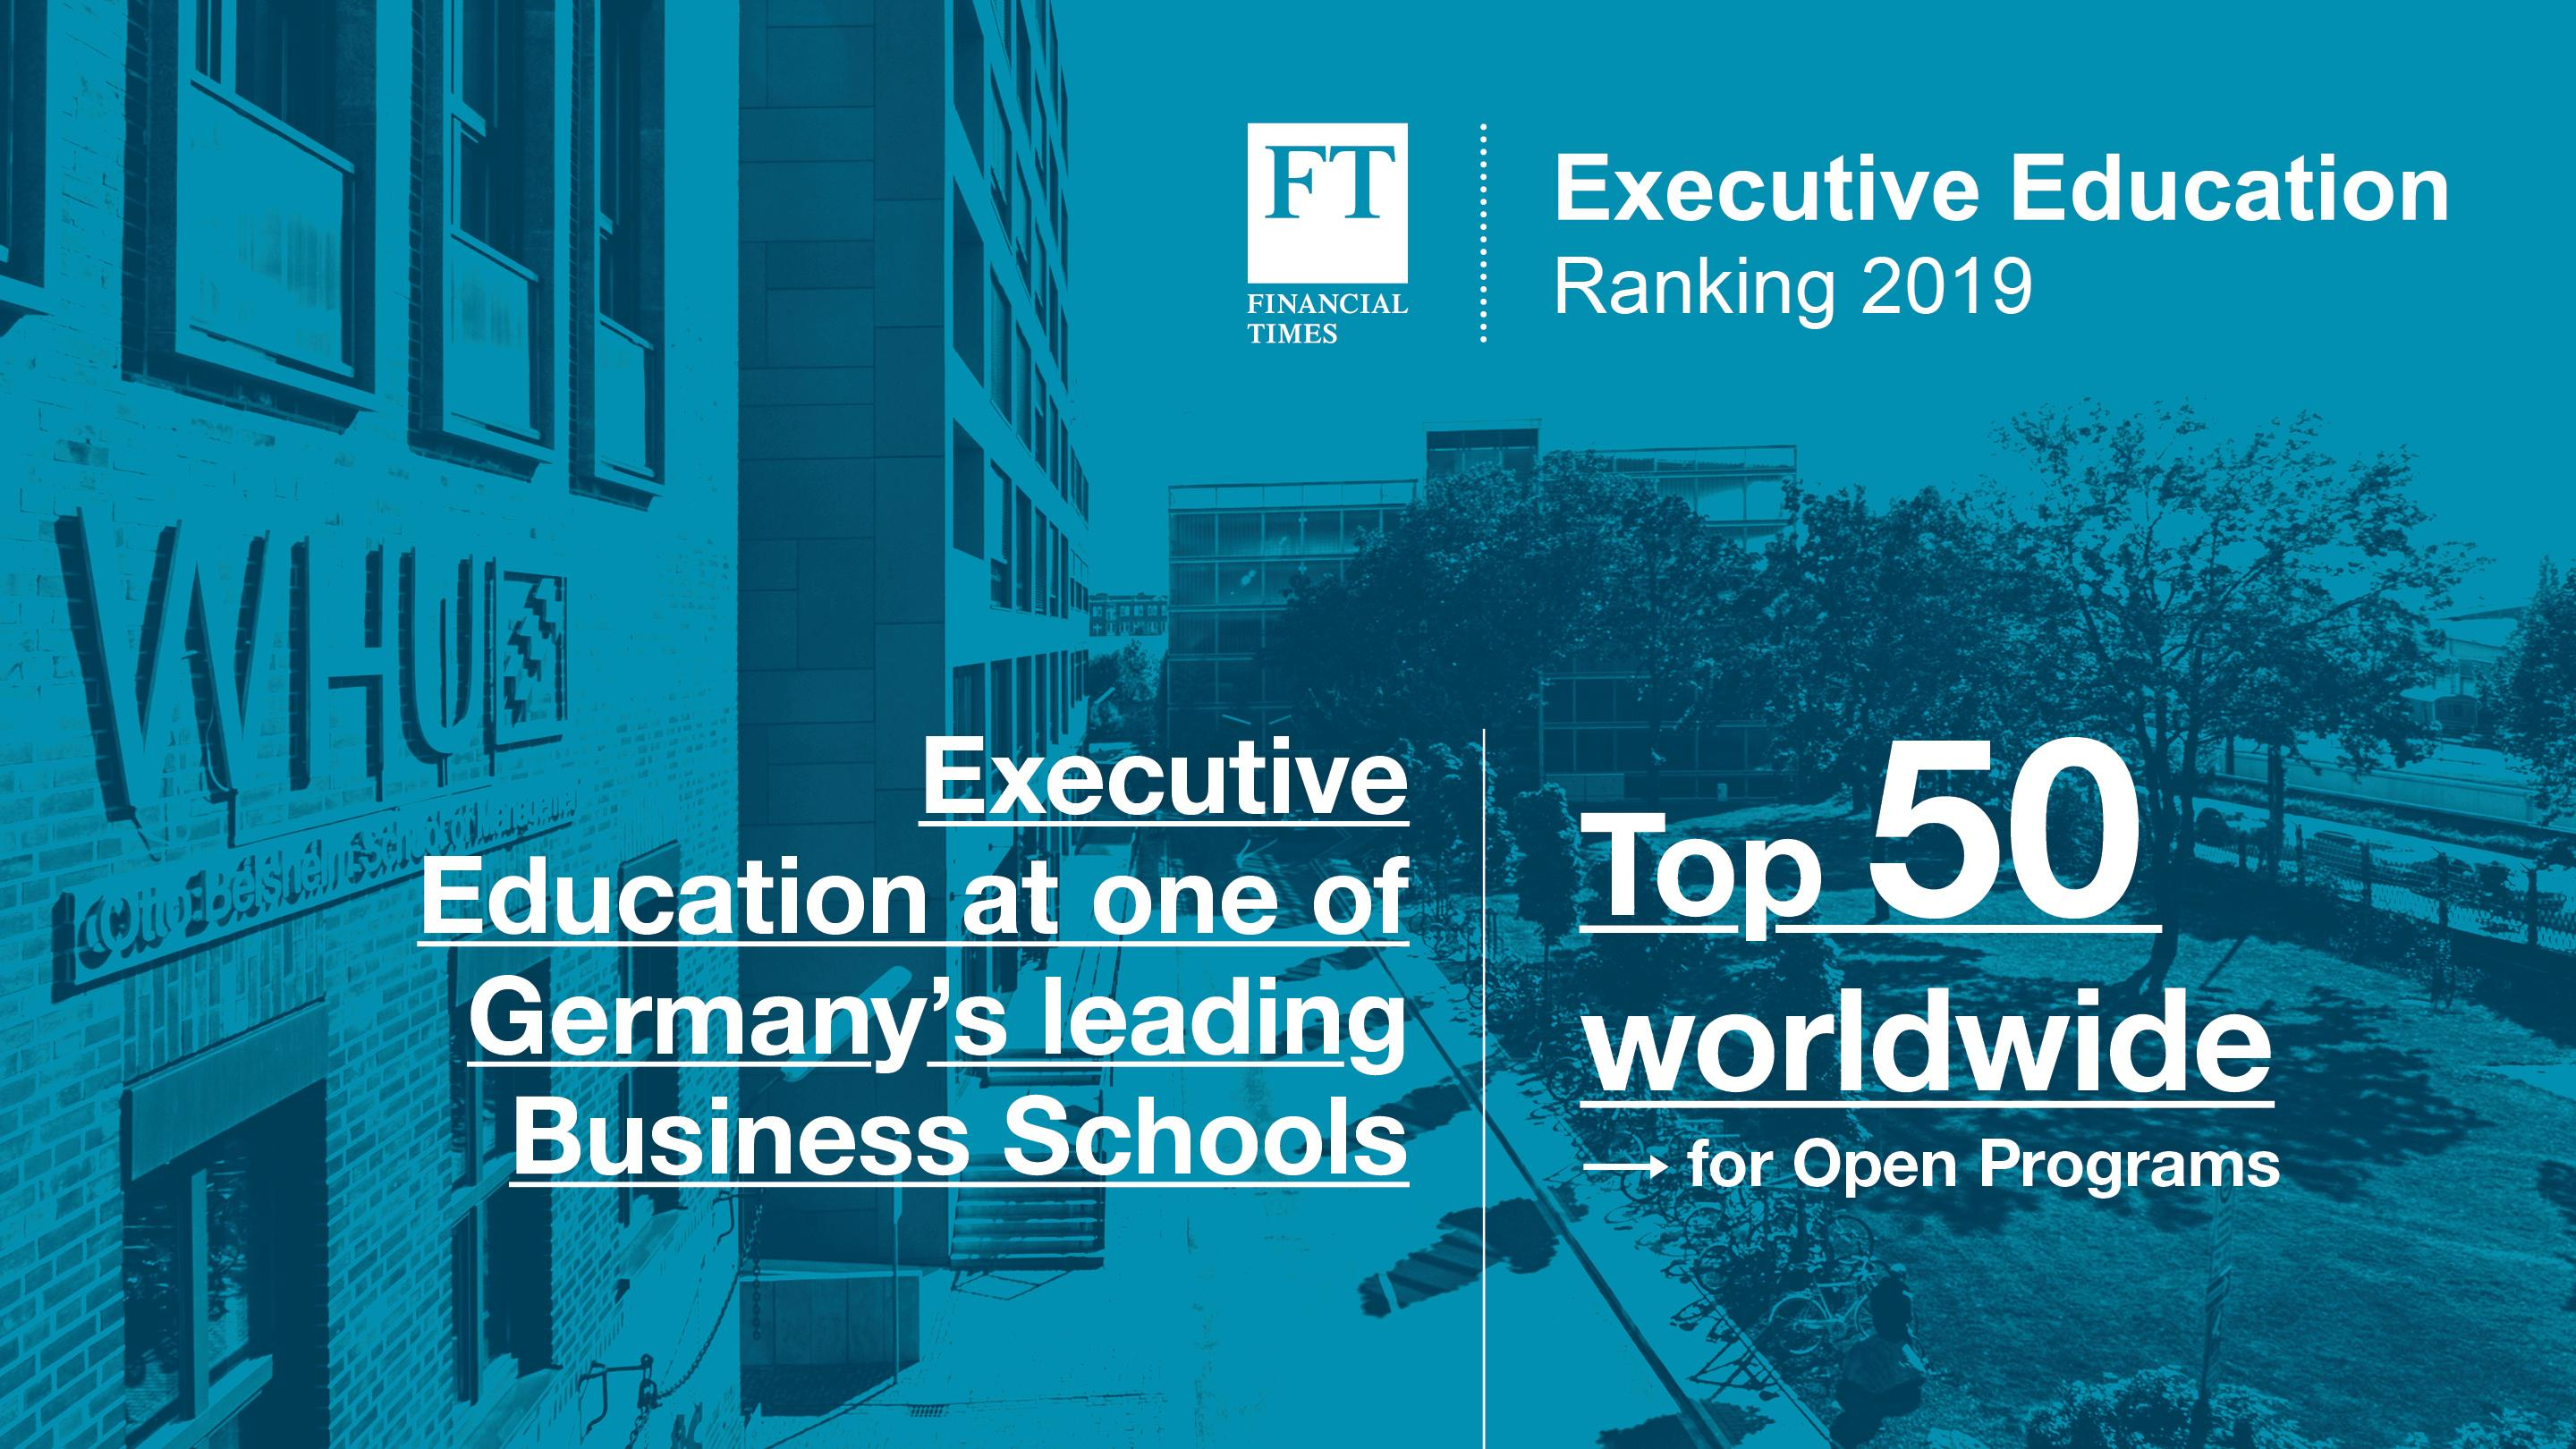 Financial Times Executive Education Ranking 2019